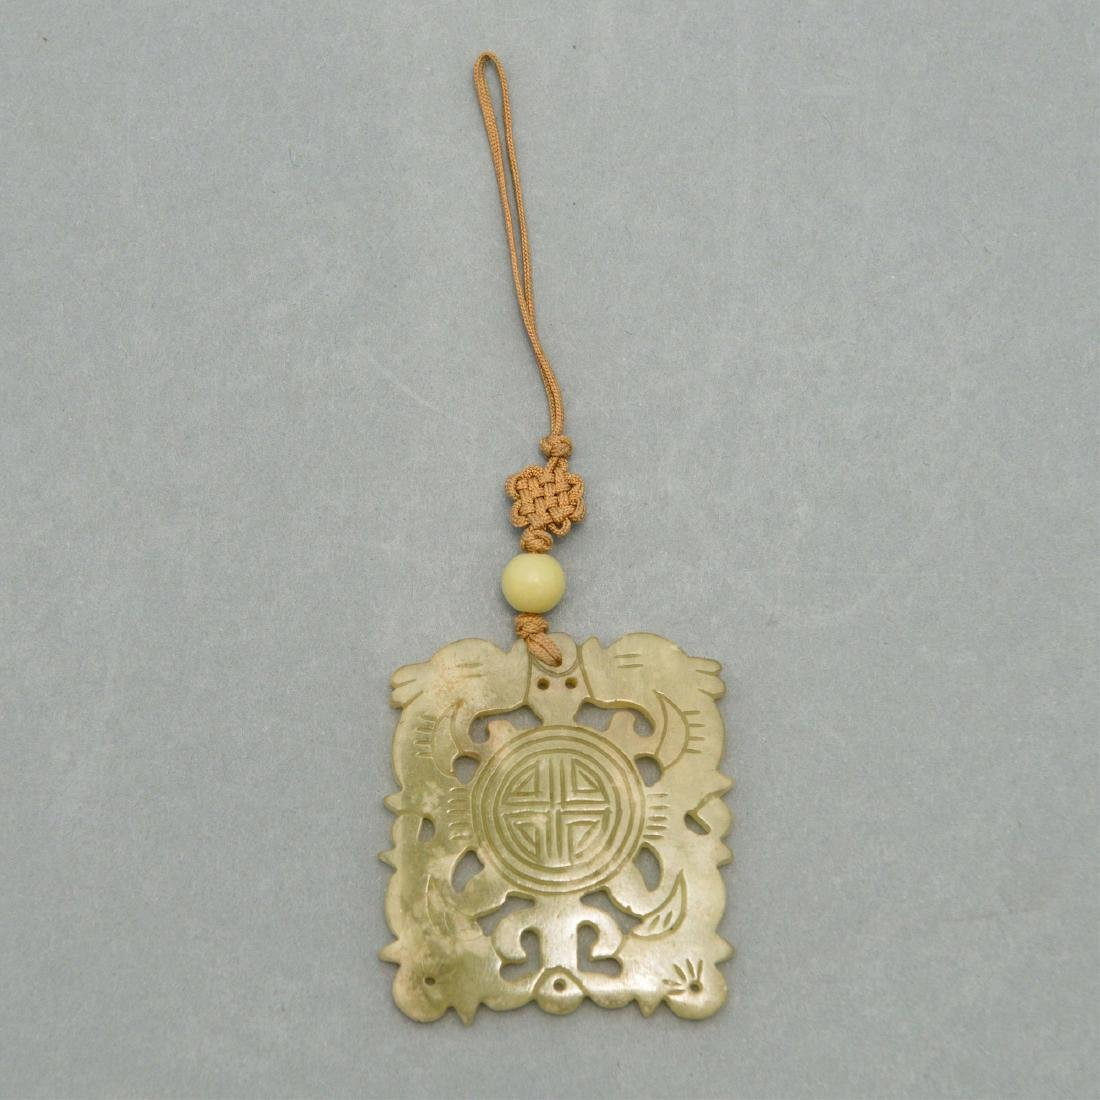 CARVED JADE NECKLACE ON DECORATIVE CORD - 2